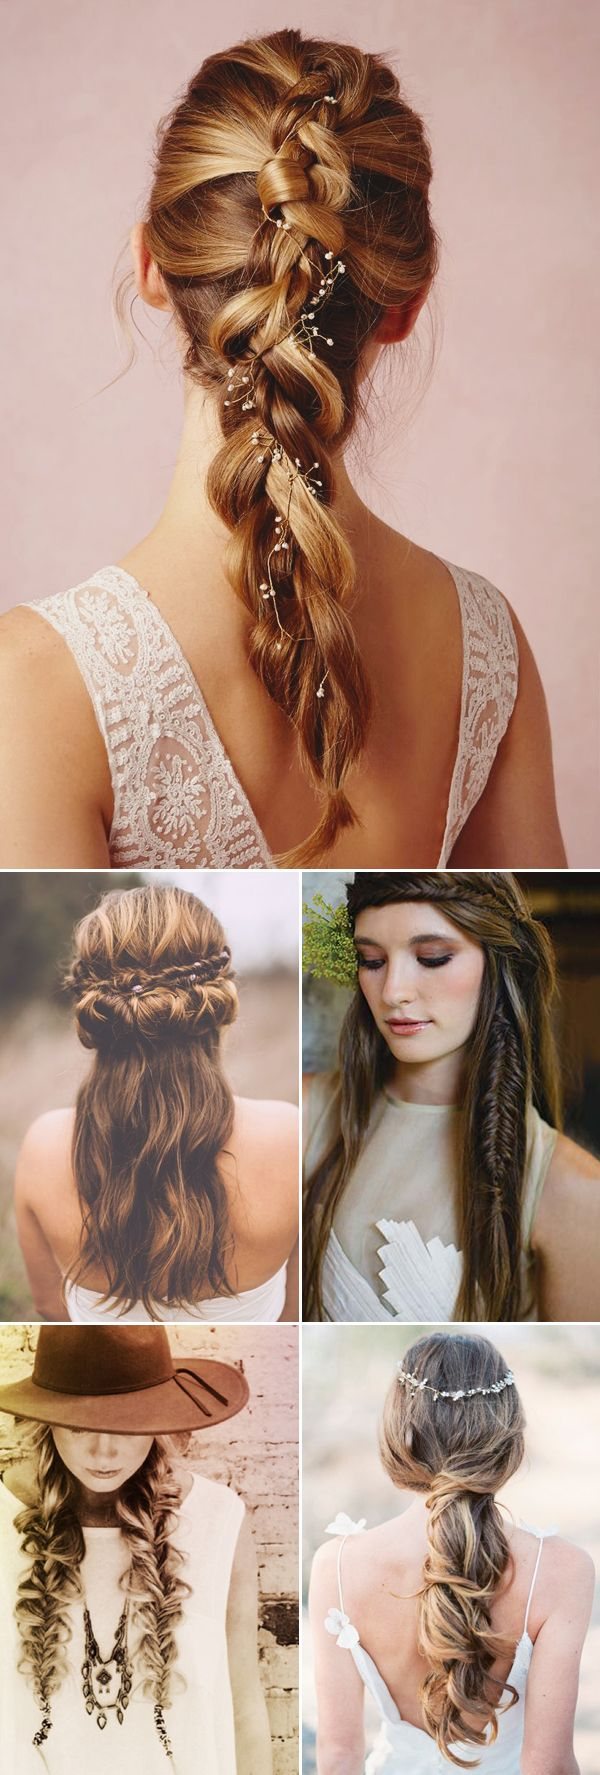 Fancy Braided Hairstyles For Long Hair Lilostyle